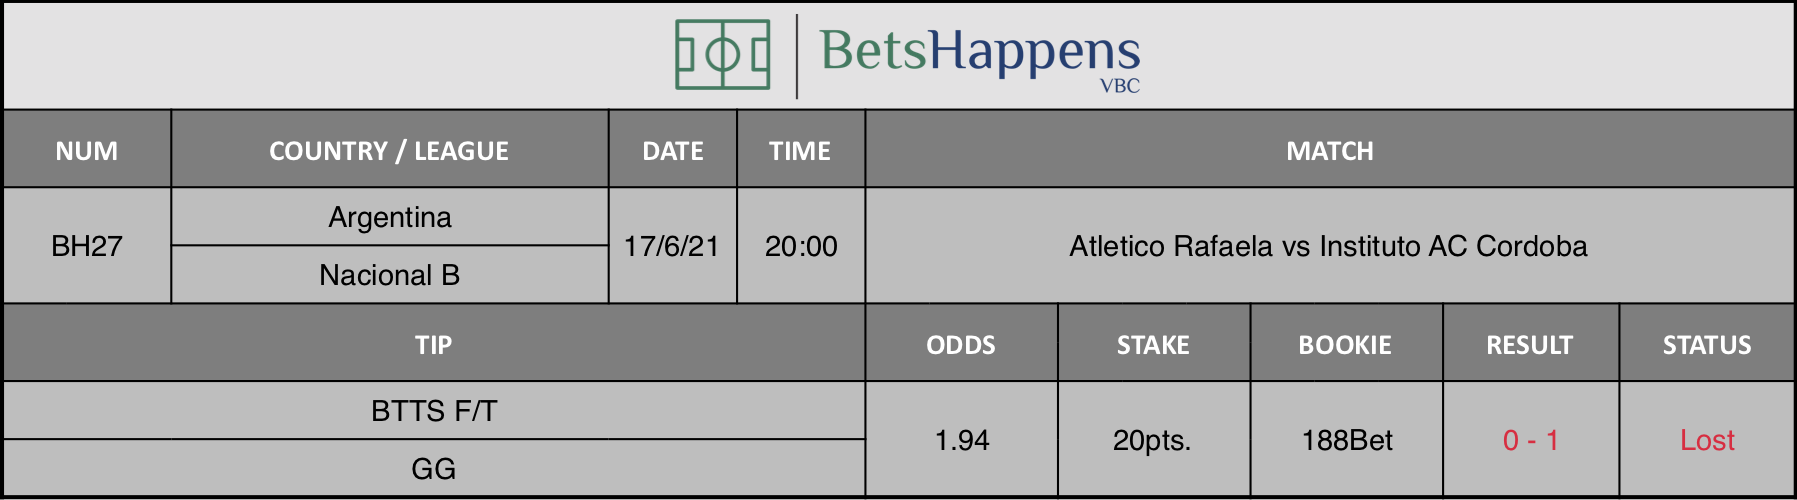 Results of our tip for the Atletico Rafaela vs Instituto AC Cordoba Match BTTS GG is recommended.